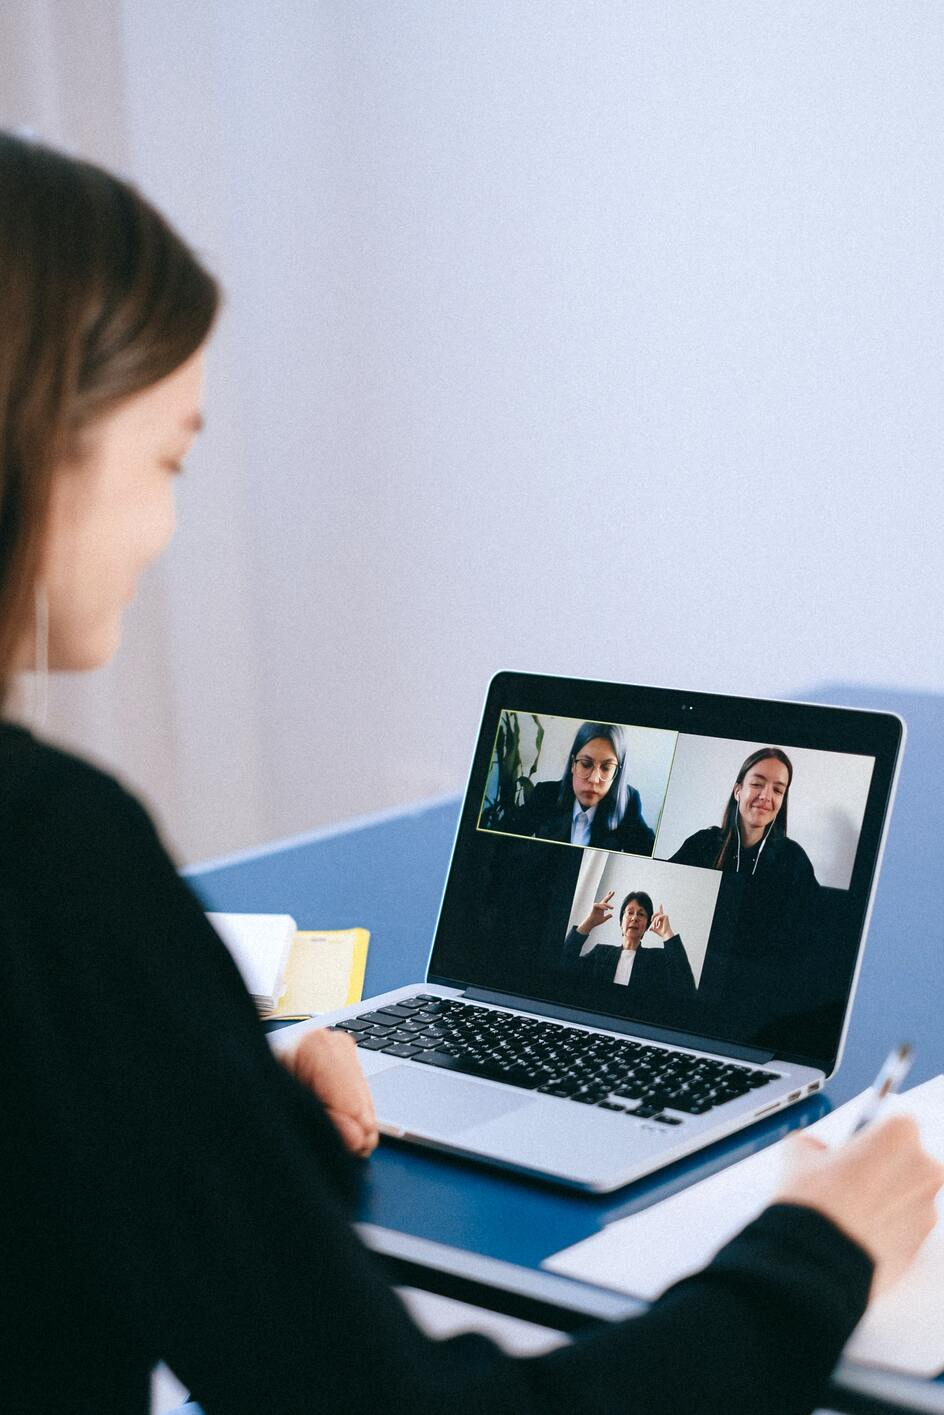 Freelance project manager having a video meeting with the project team on her laptop